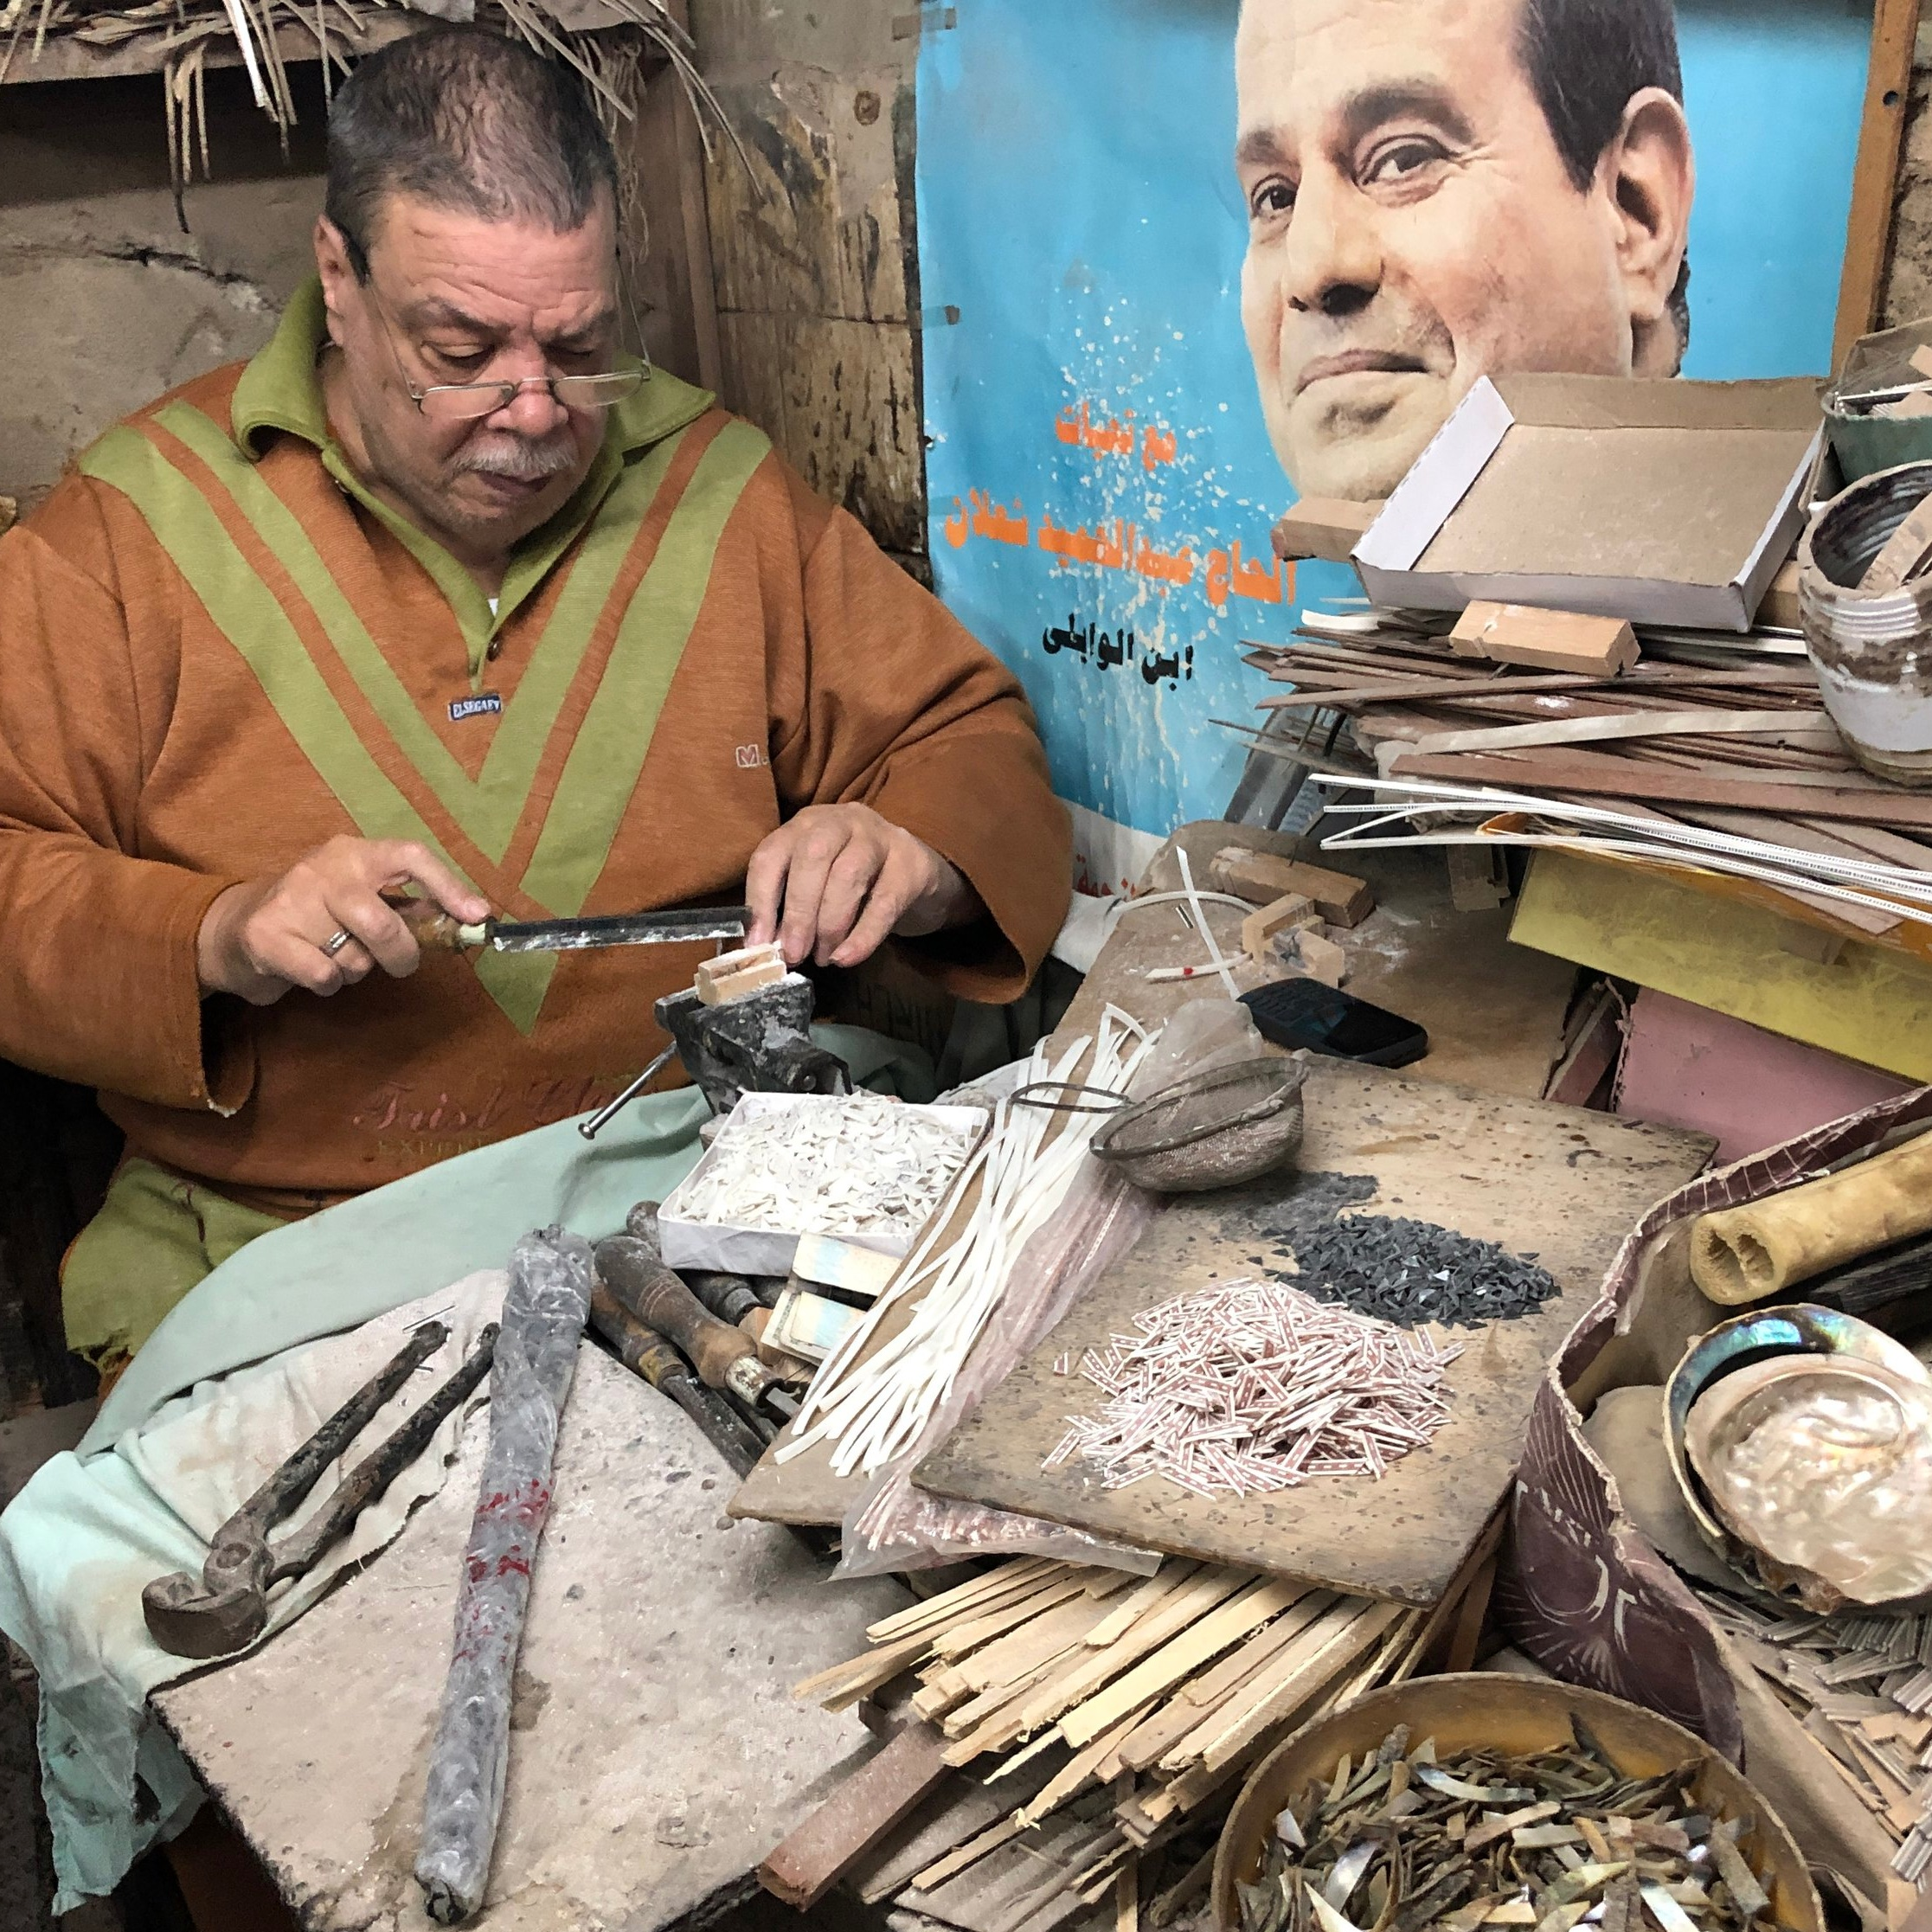 Makers and Artisans at the Khan el Khalili Market in Cairo, Egypt